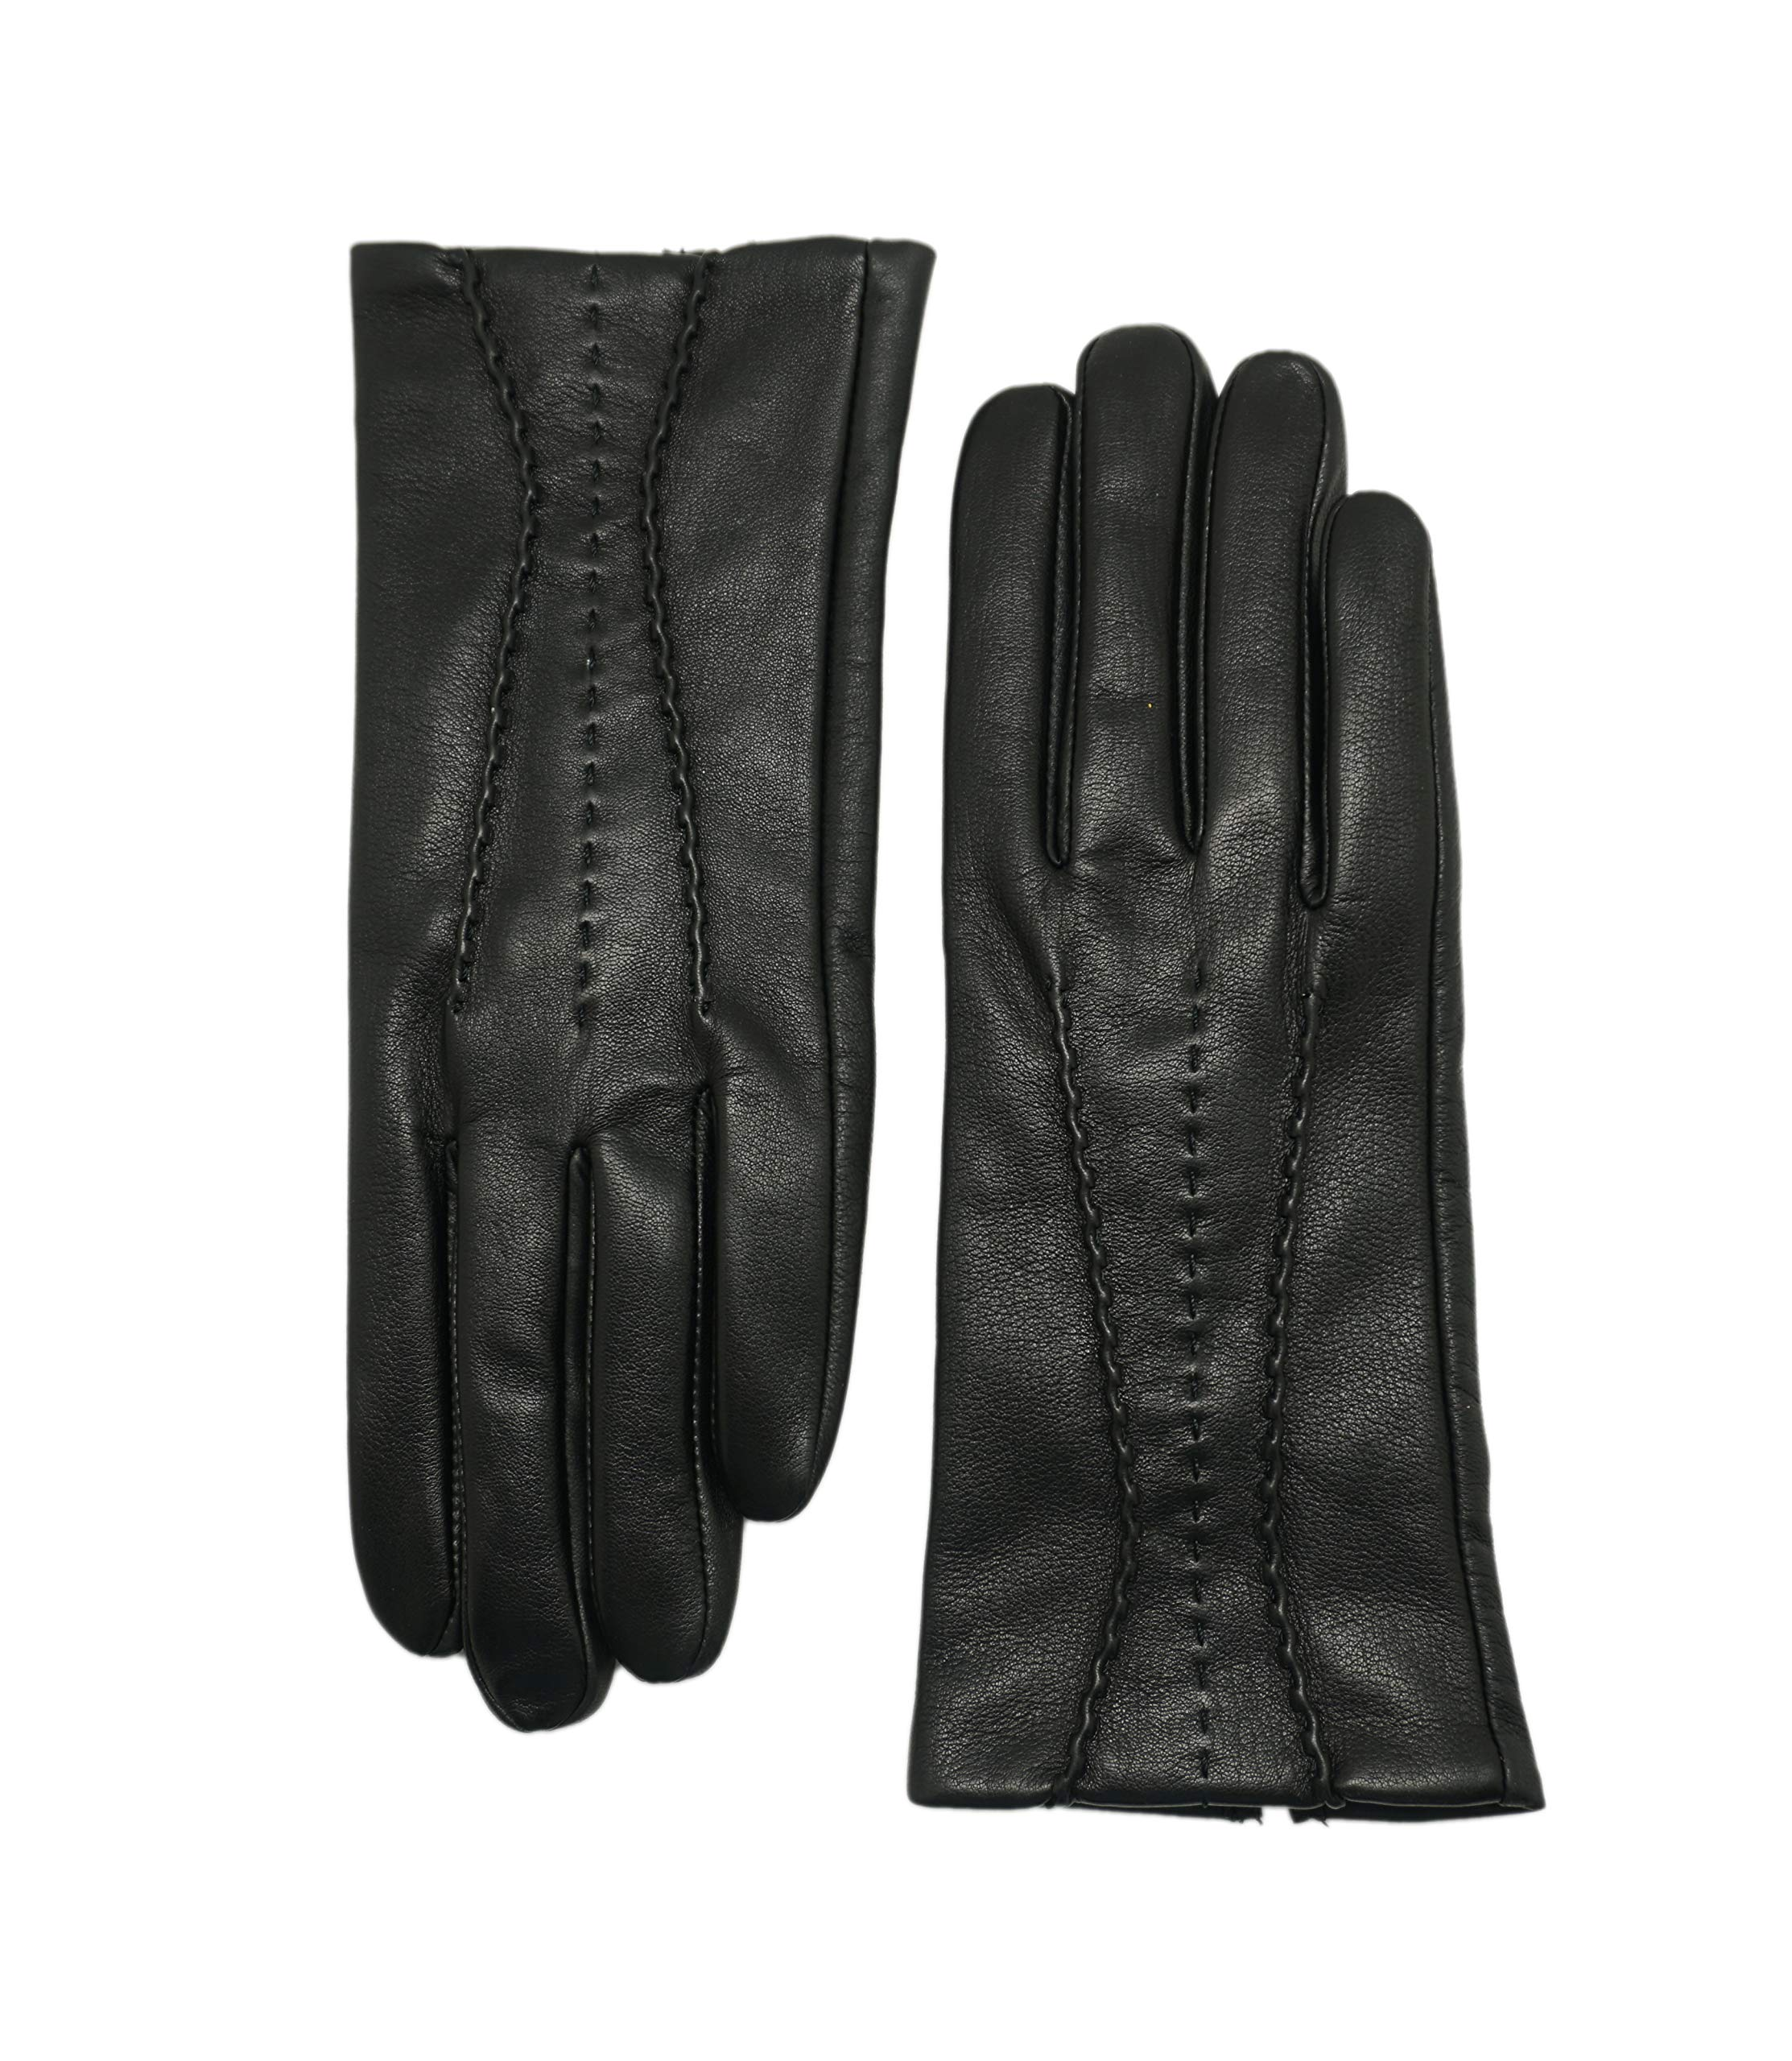 YISEVEN Womens Winter Touchscreen Leather Gloves Fleece Lined Three Points